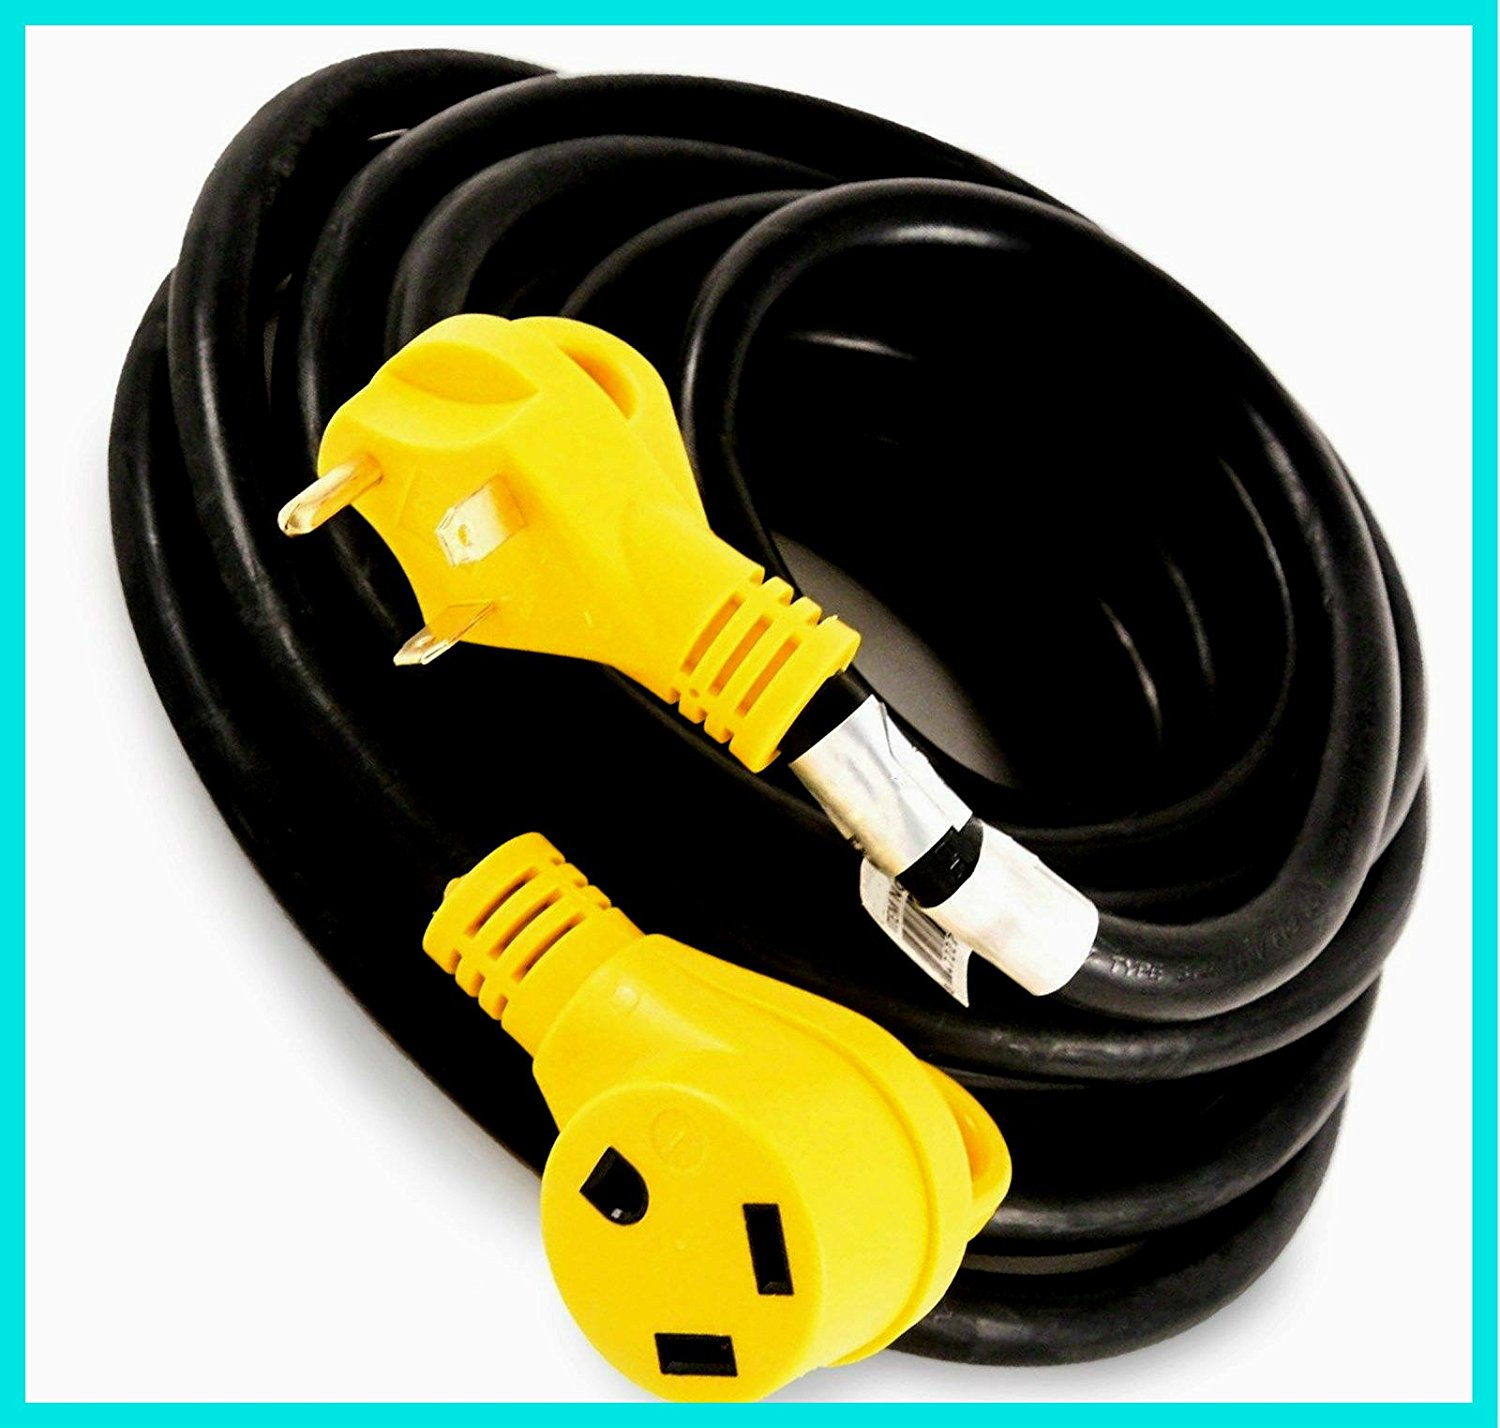 hight resolution of power adapter cable extension cord 100 copper wiring 30a trailer camper 25 ft 30 amp